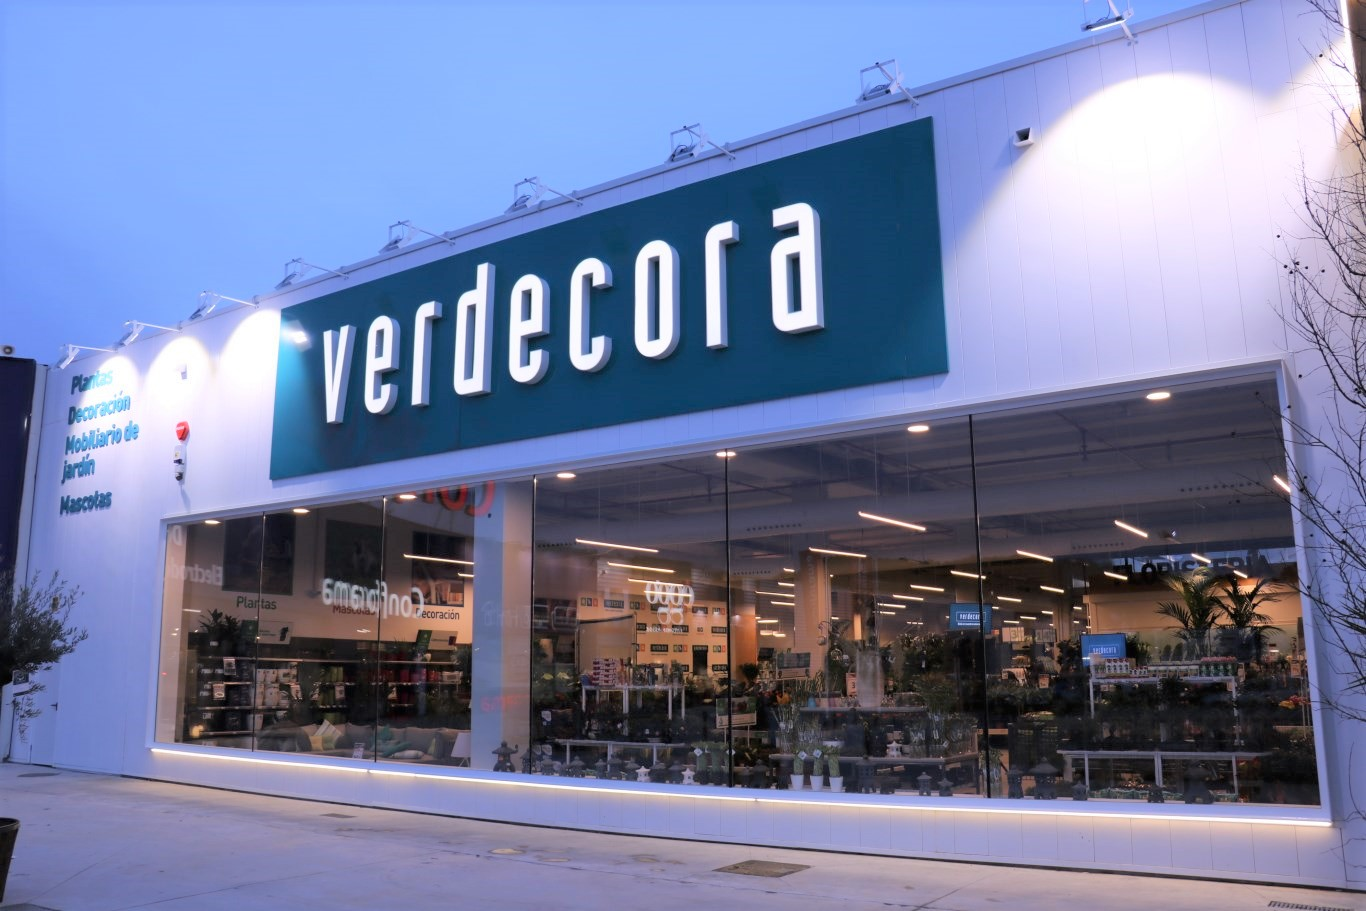 Verdecora alcal de henares abre sus puertas dream alcal for Verdecora madrid